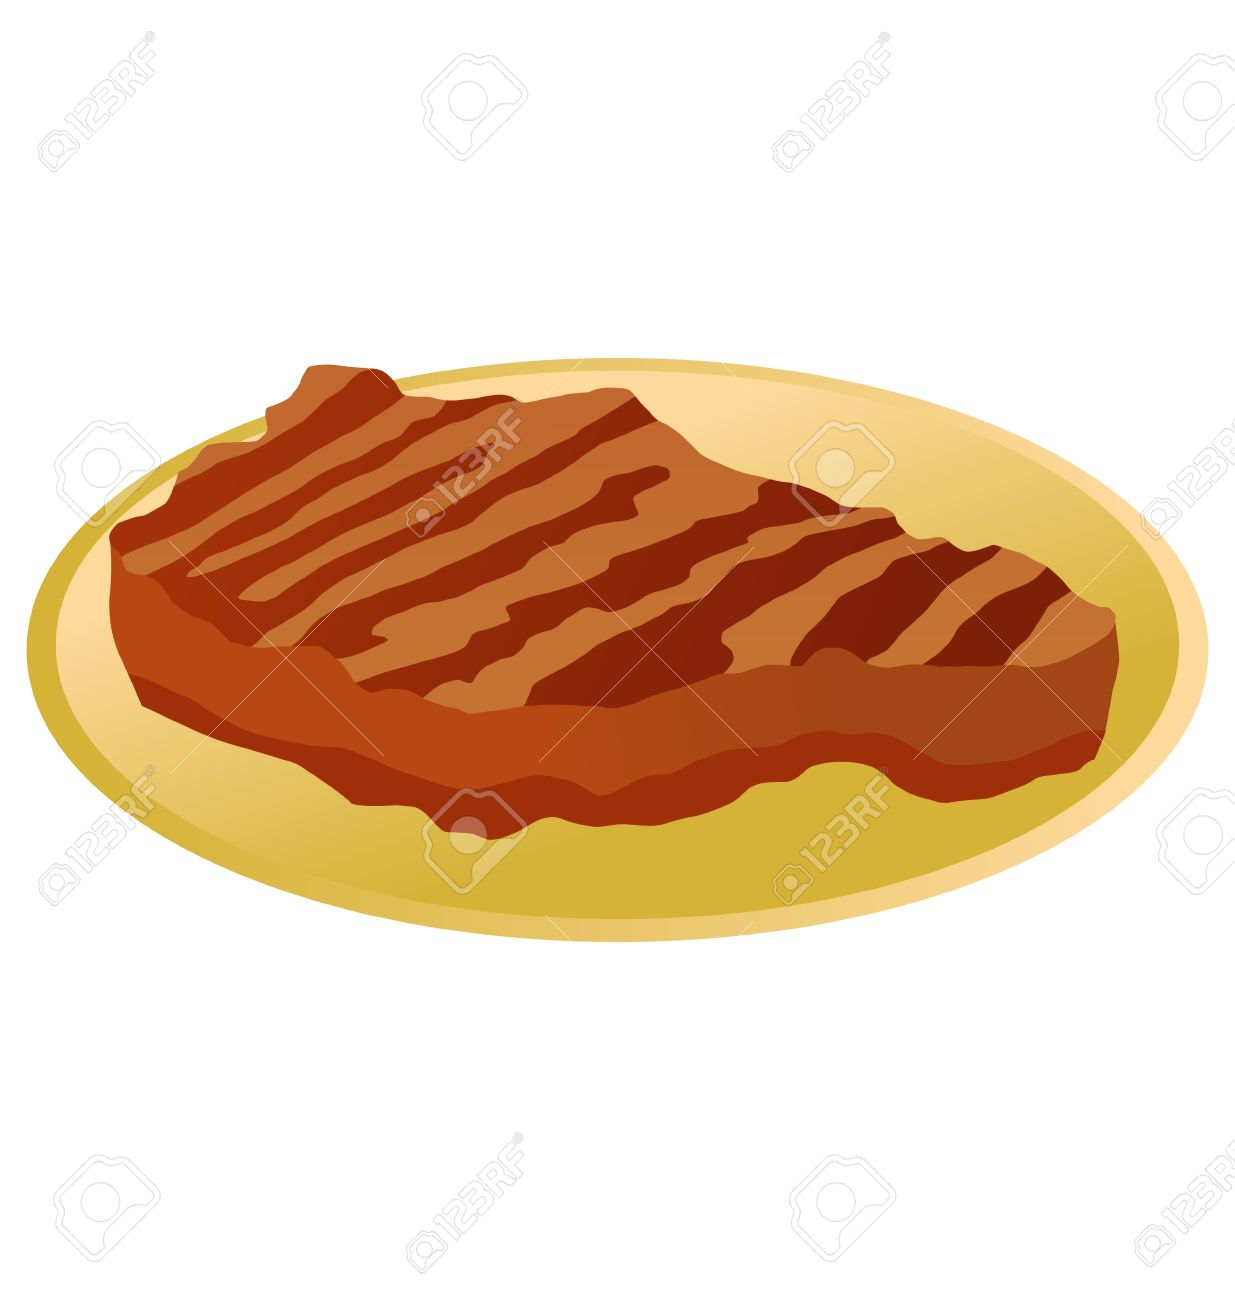 Roast Steak On A Plate On White Background Royalty Free Cliparts.